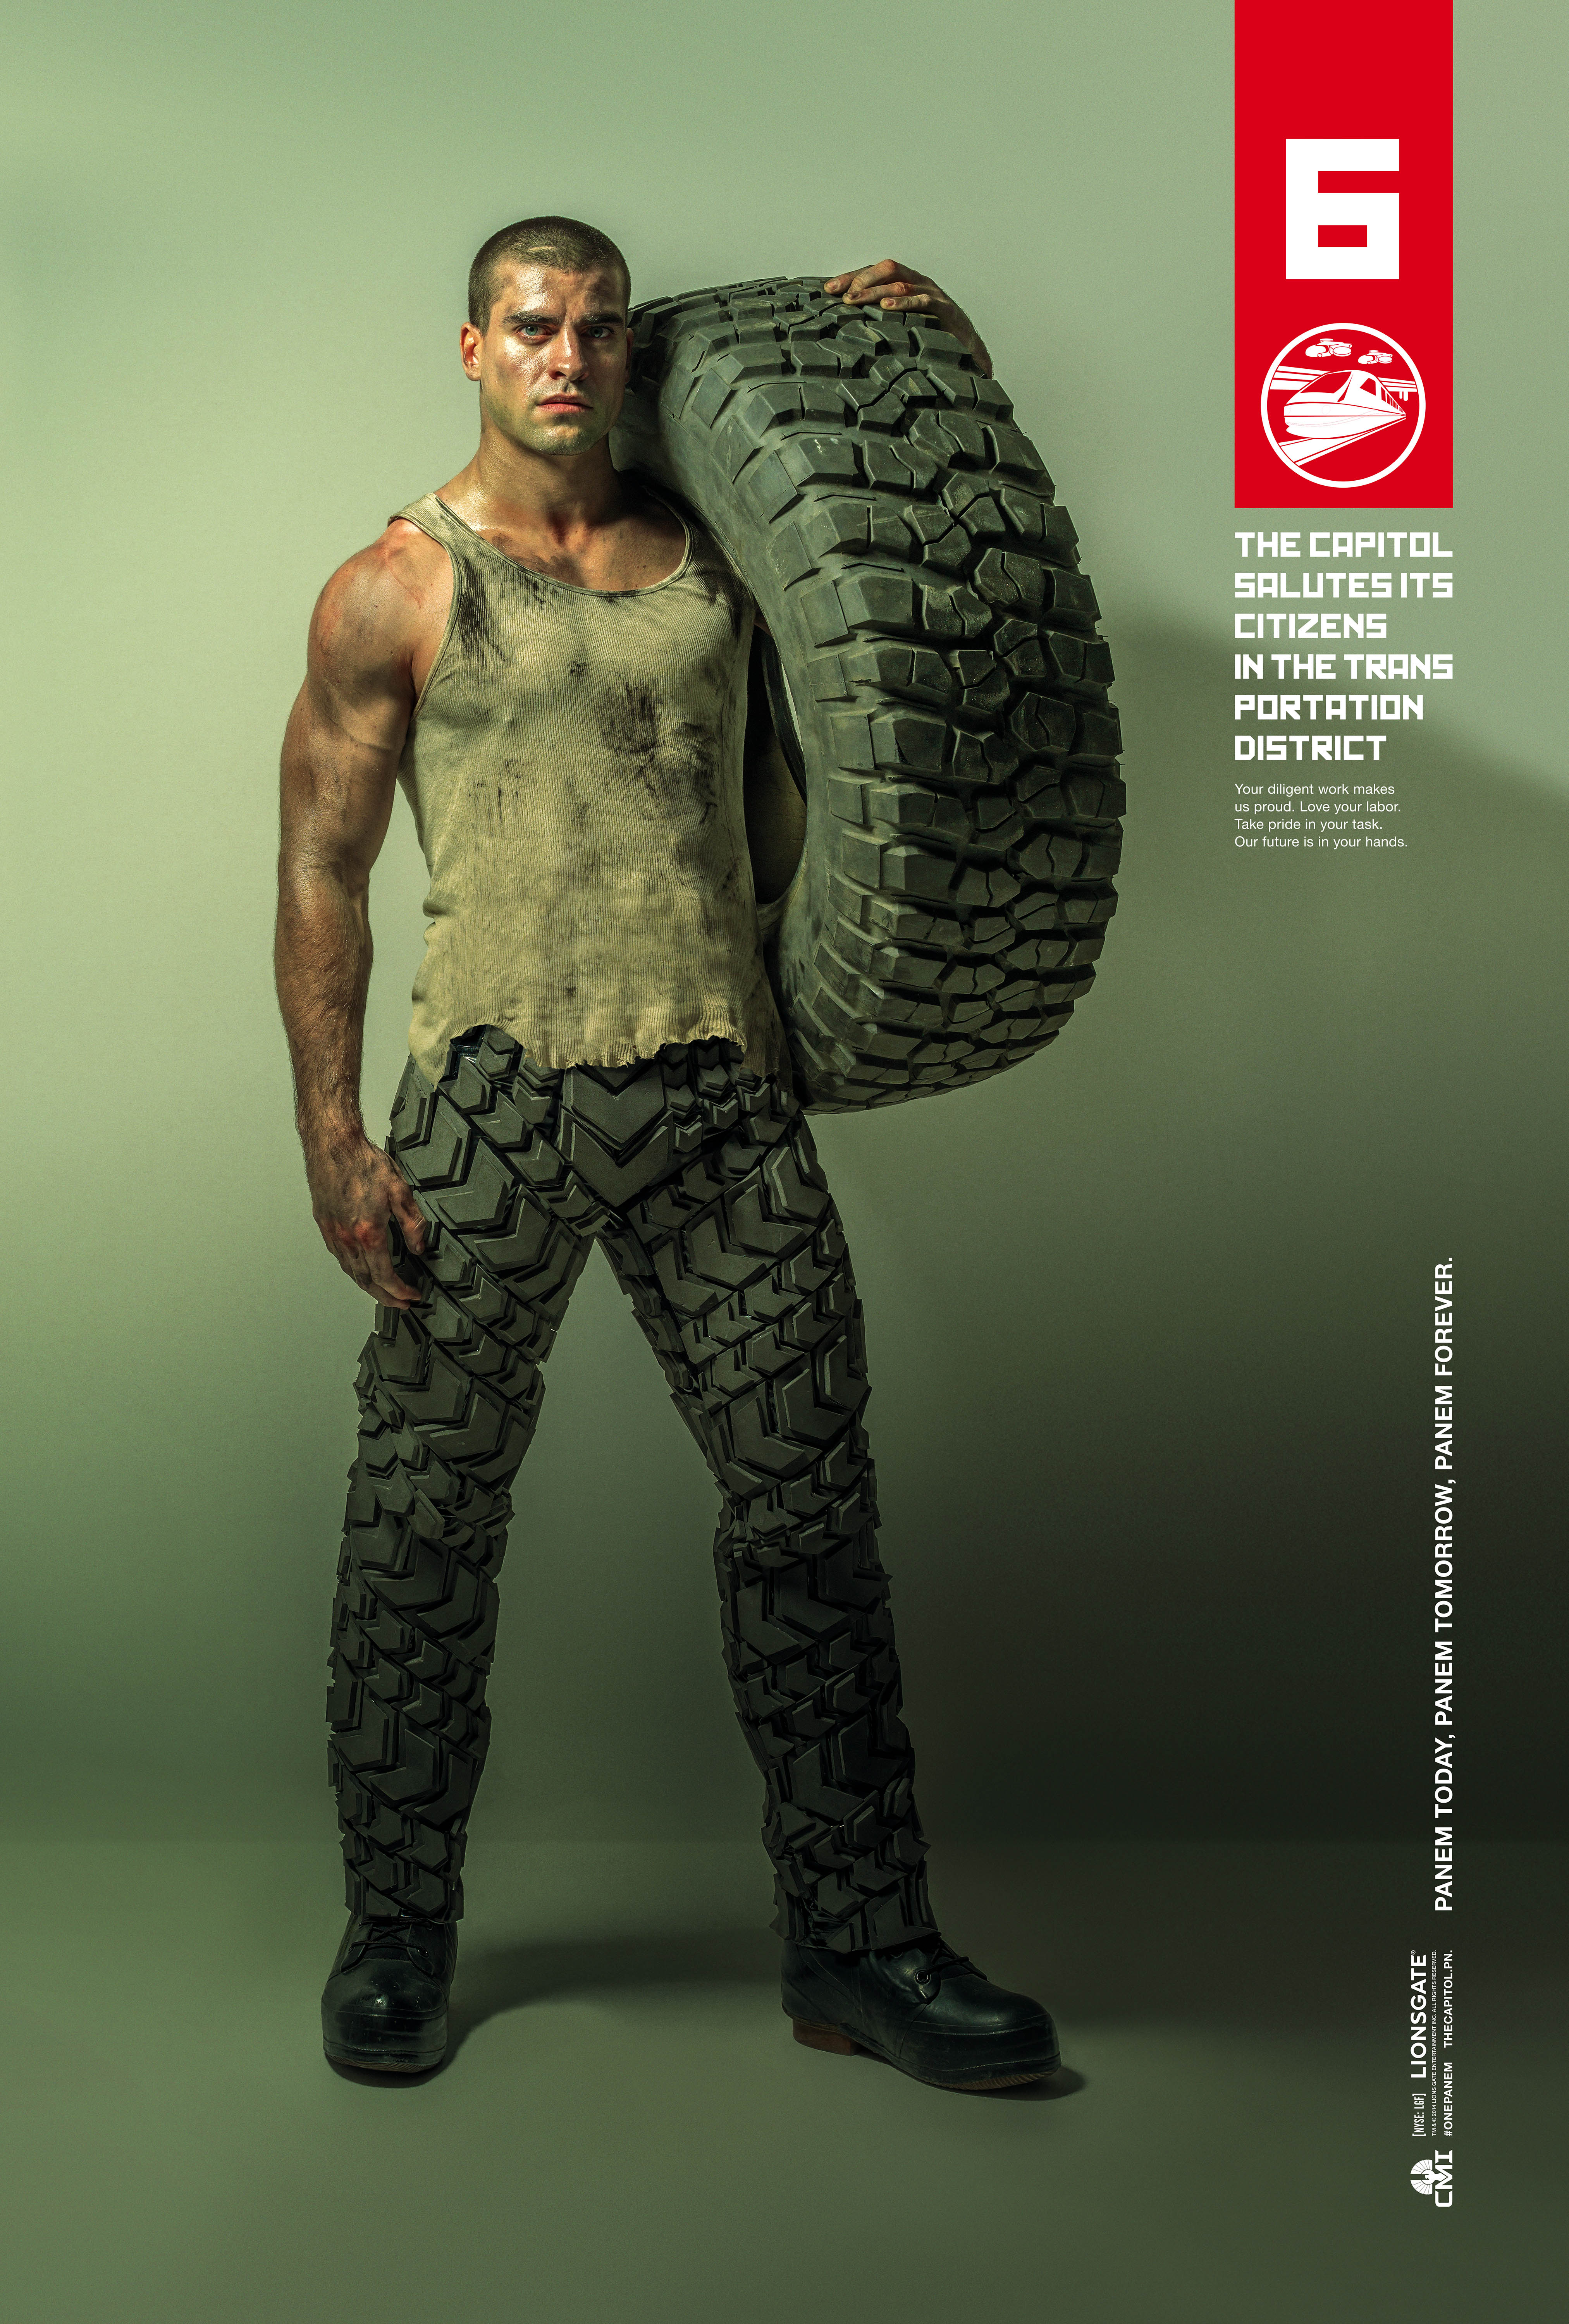 Honor the districts in new posters for The Hunger Games